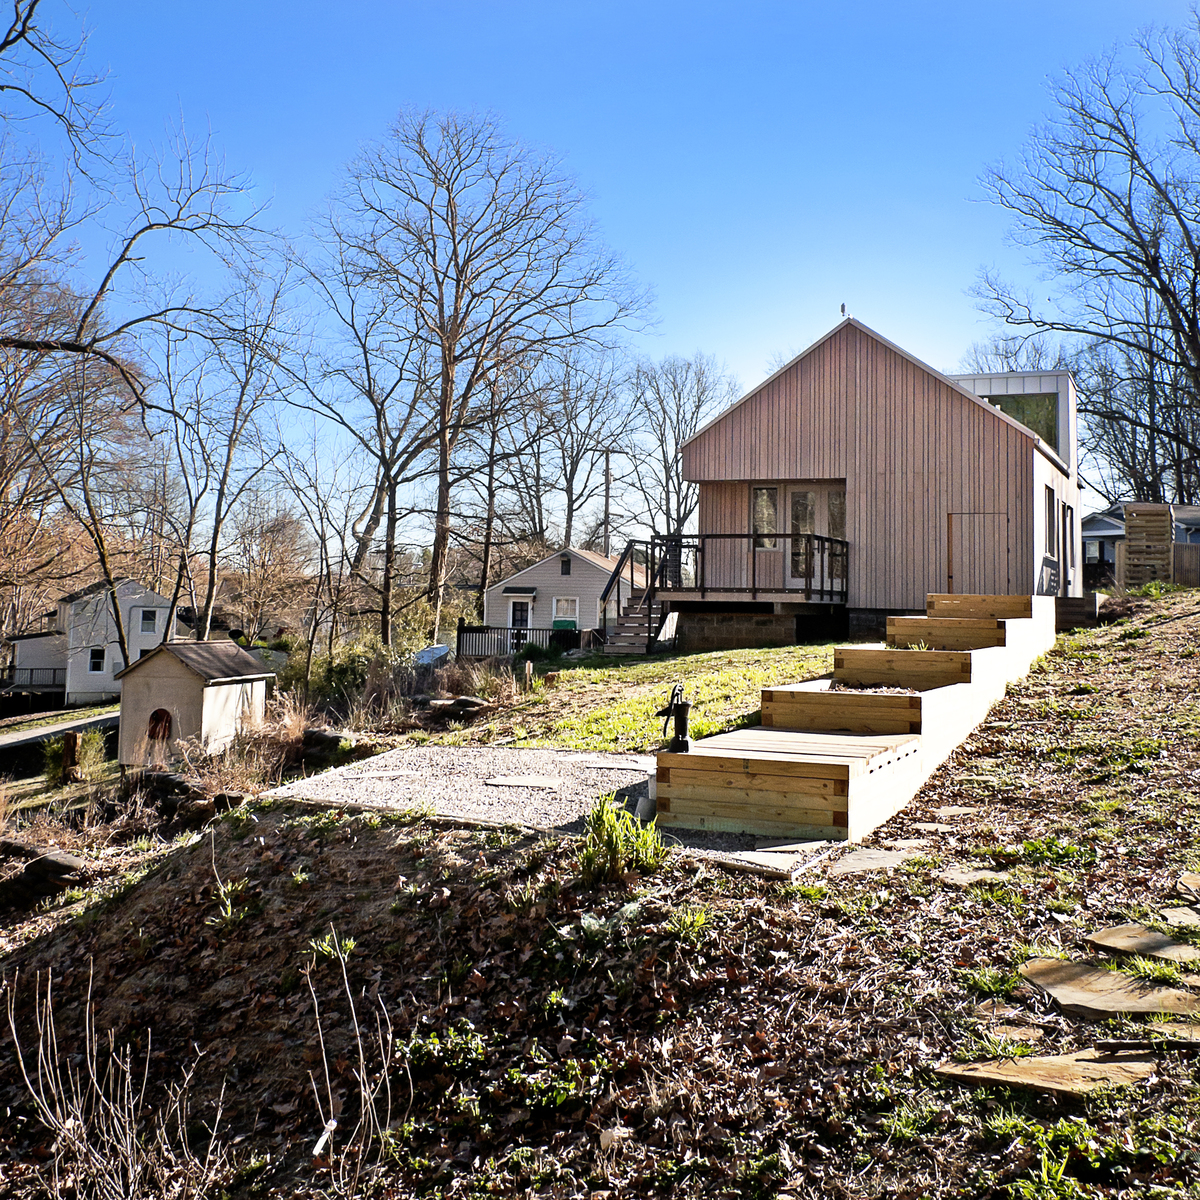 View of vegetable beds and gravel plinth from community path. Photo credit: Ken McCown